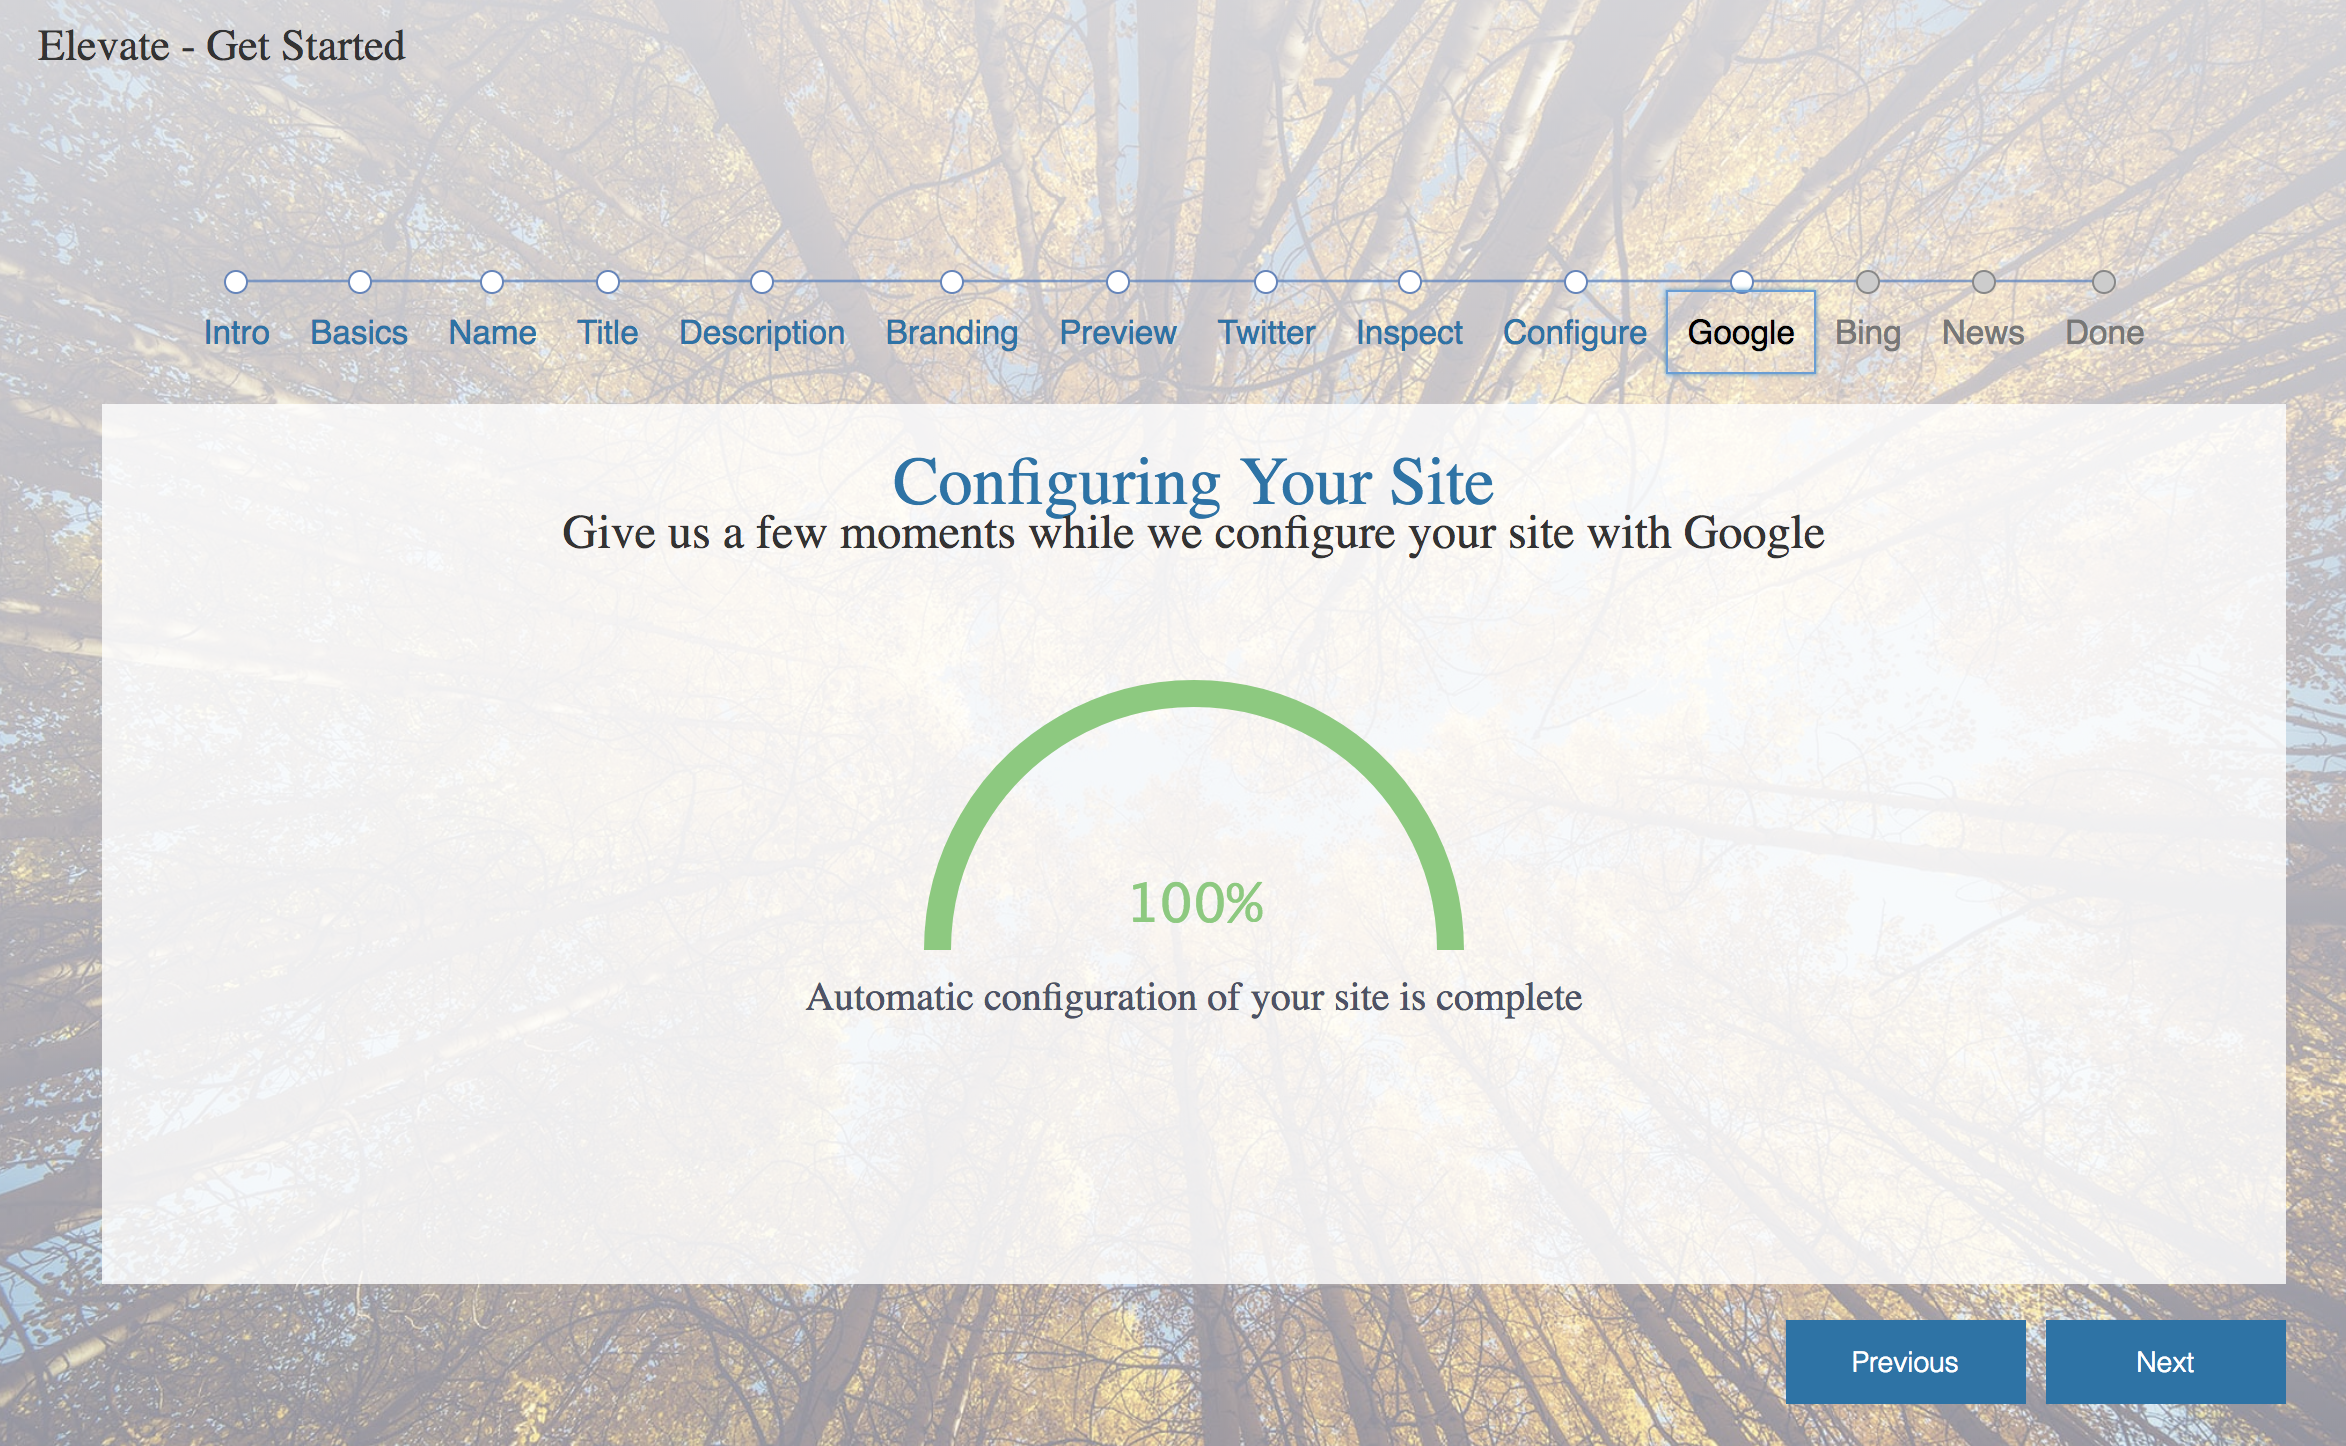 Elevate will automatically verify the site in Google Search Console, create a new Analytics property, and then configure the website to use it.